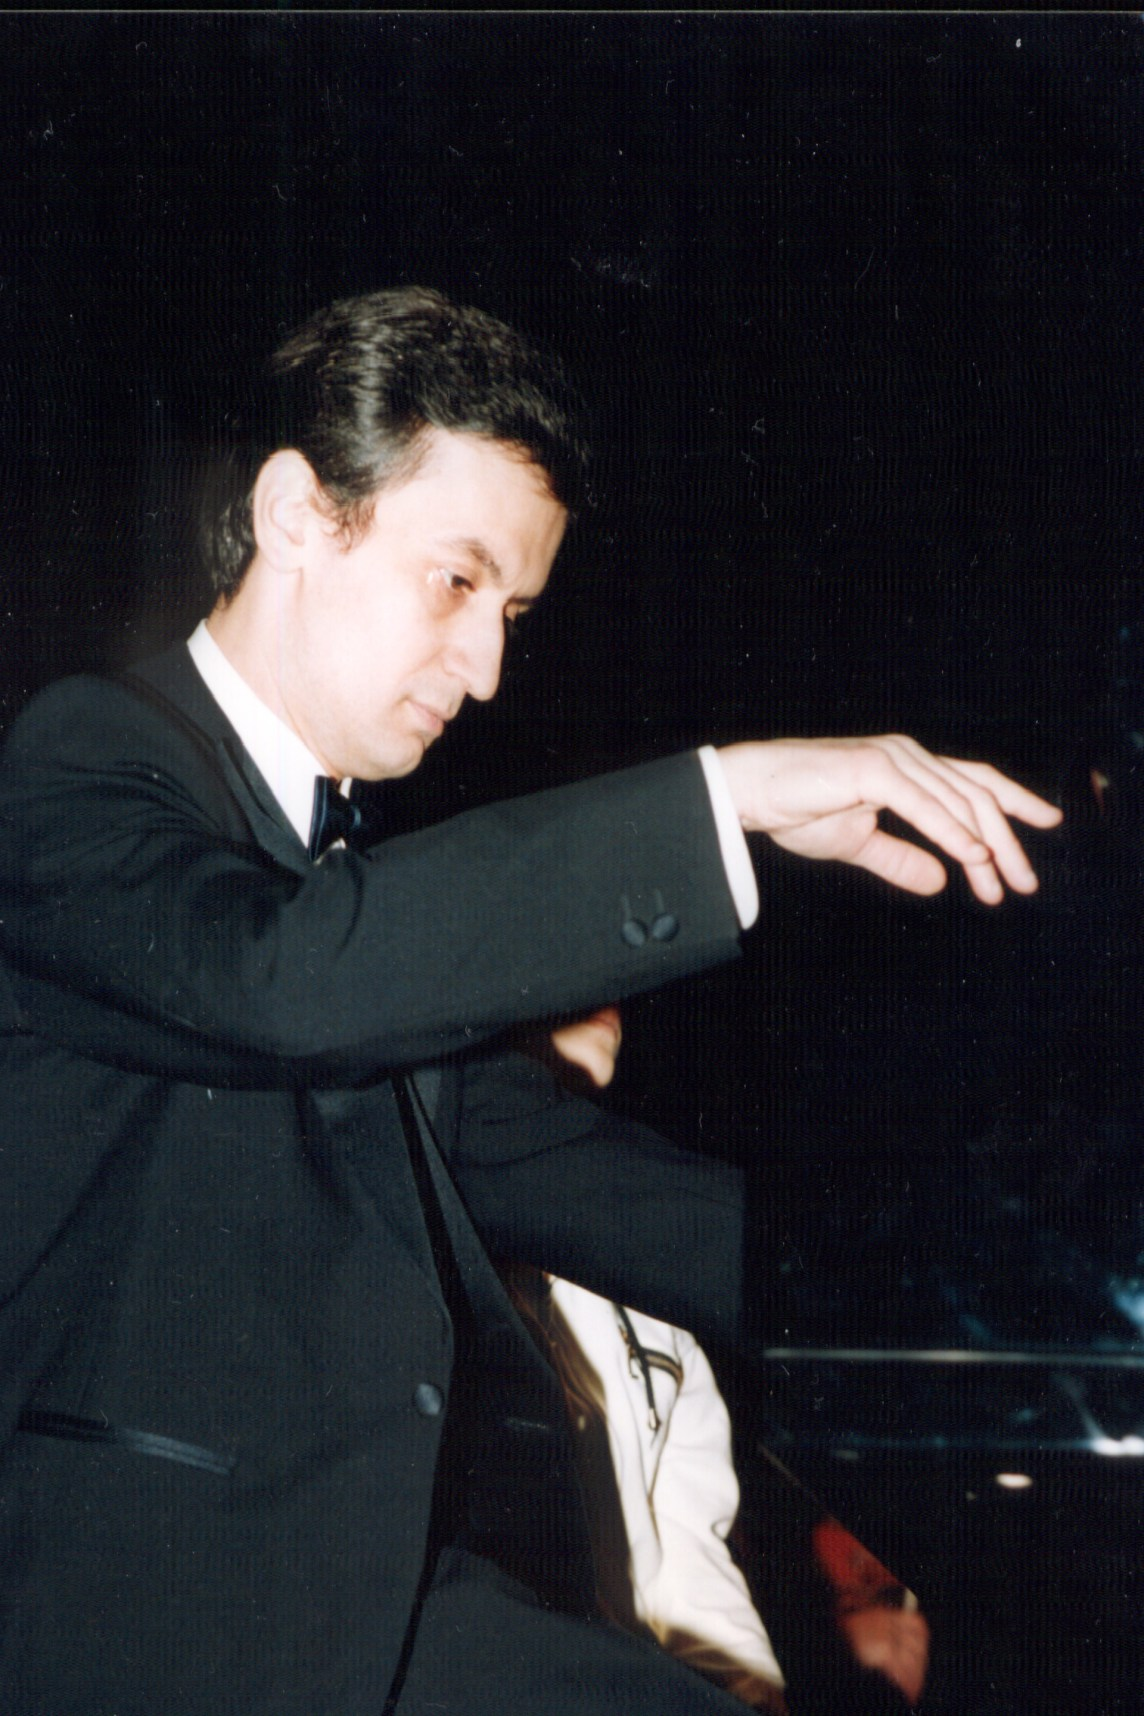 Performing Khachaturian's Piano Concerto